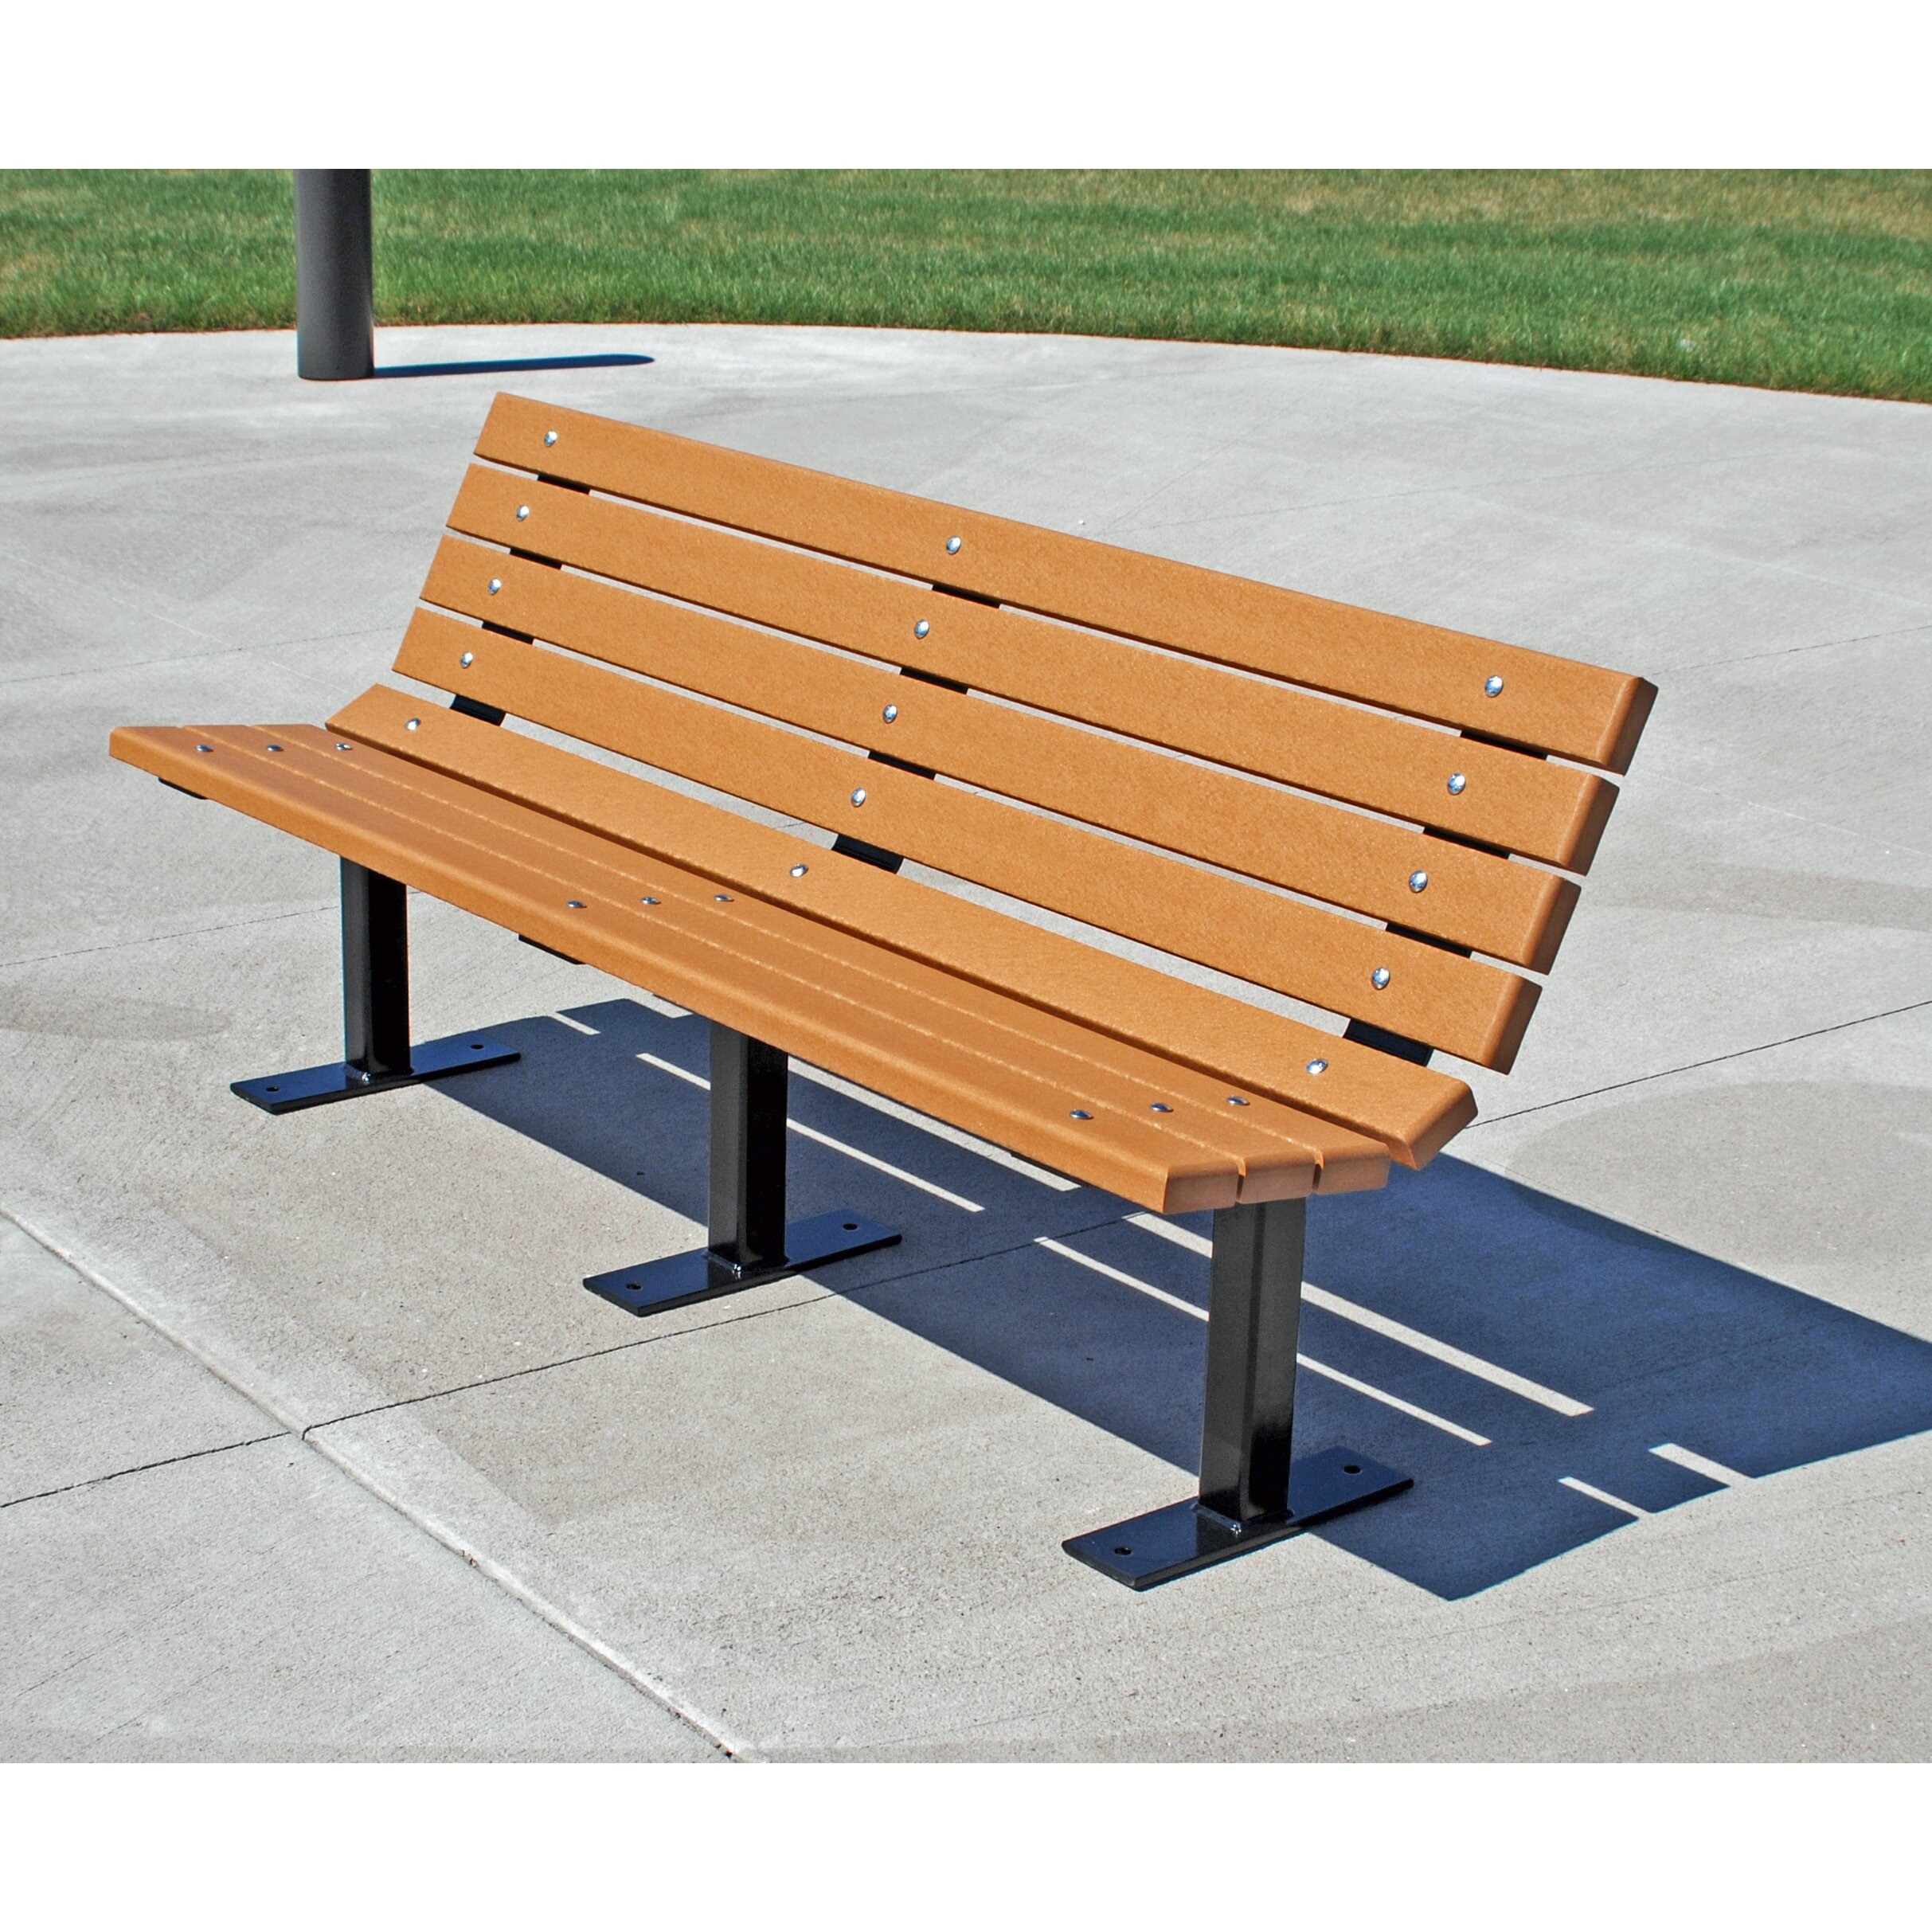 Fine Contour Recycled Plastic Park Bench By Frog Furnishings On Forskolin Free Trial Chair Design Images Forskolin Free Trialorg